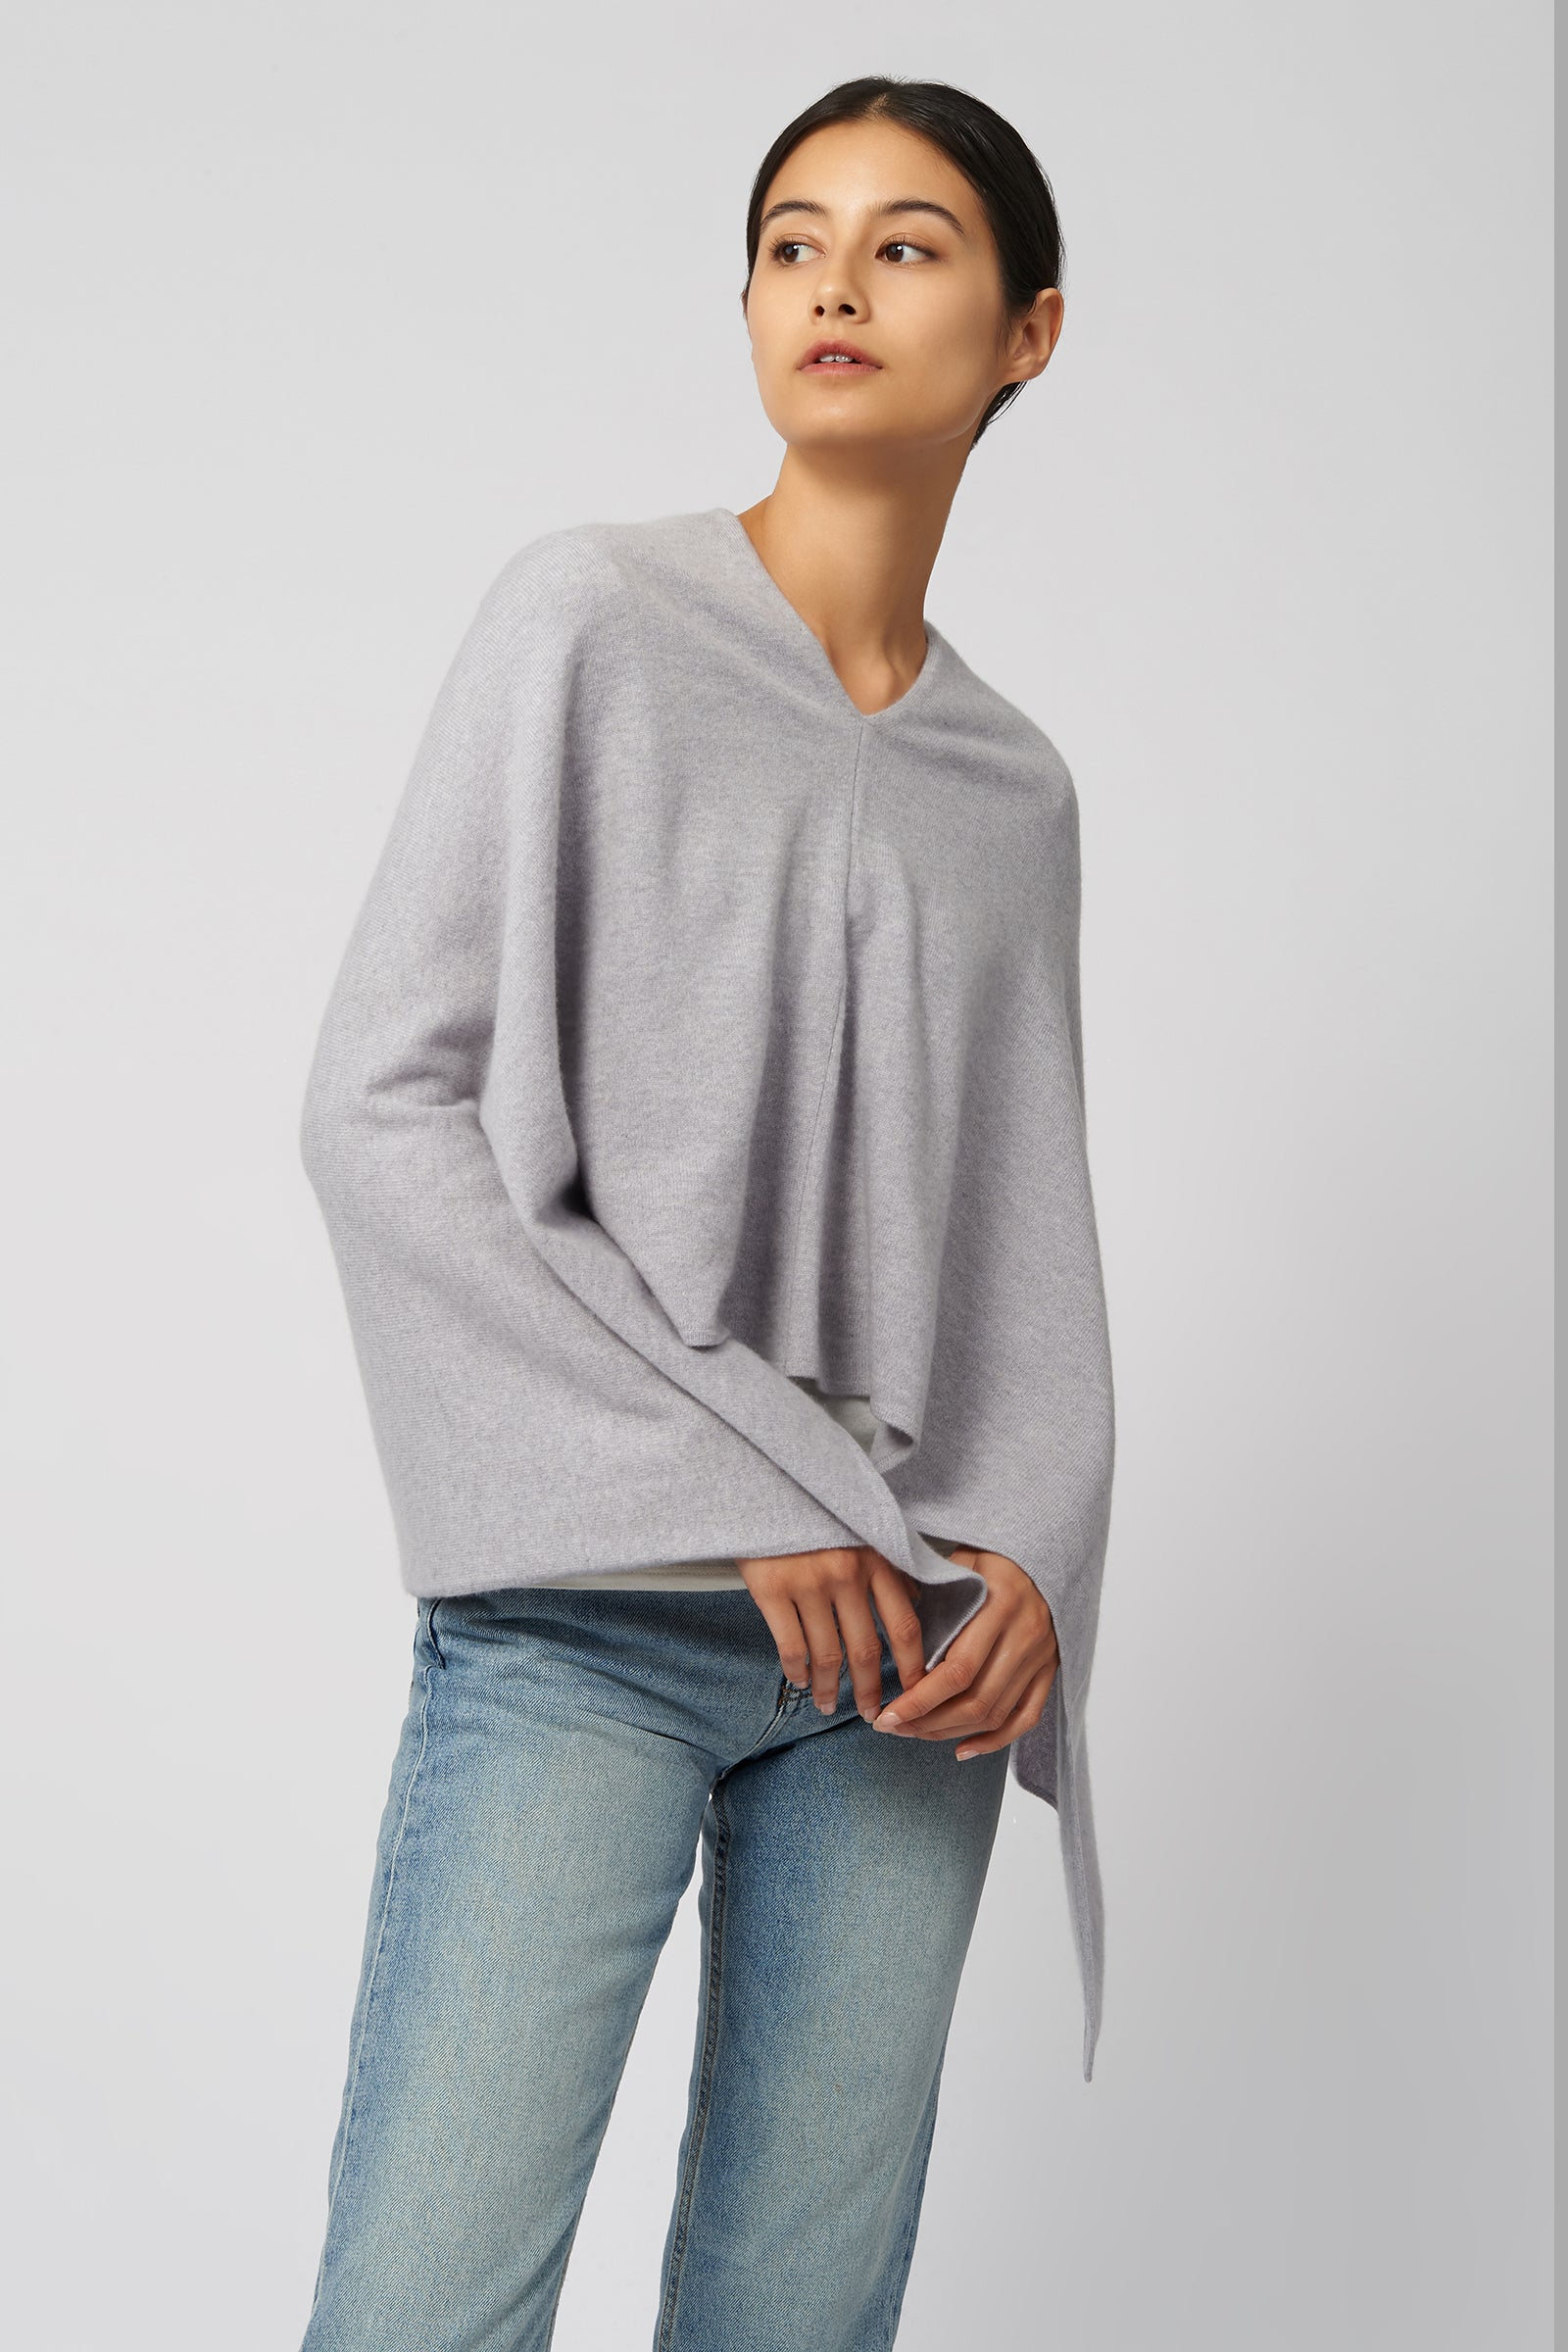 Kal Rieman Cashmere Poncho in Grey Heather on Model Front View